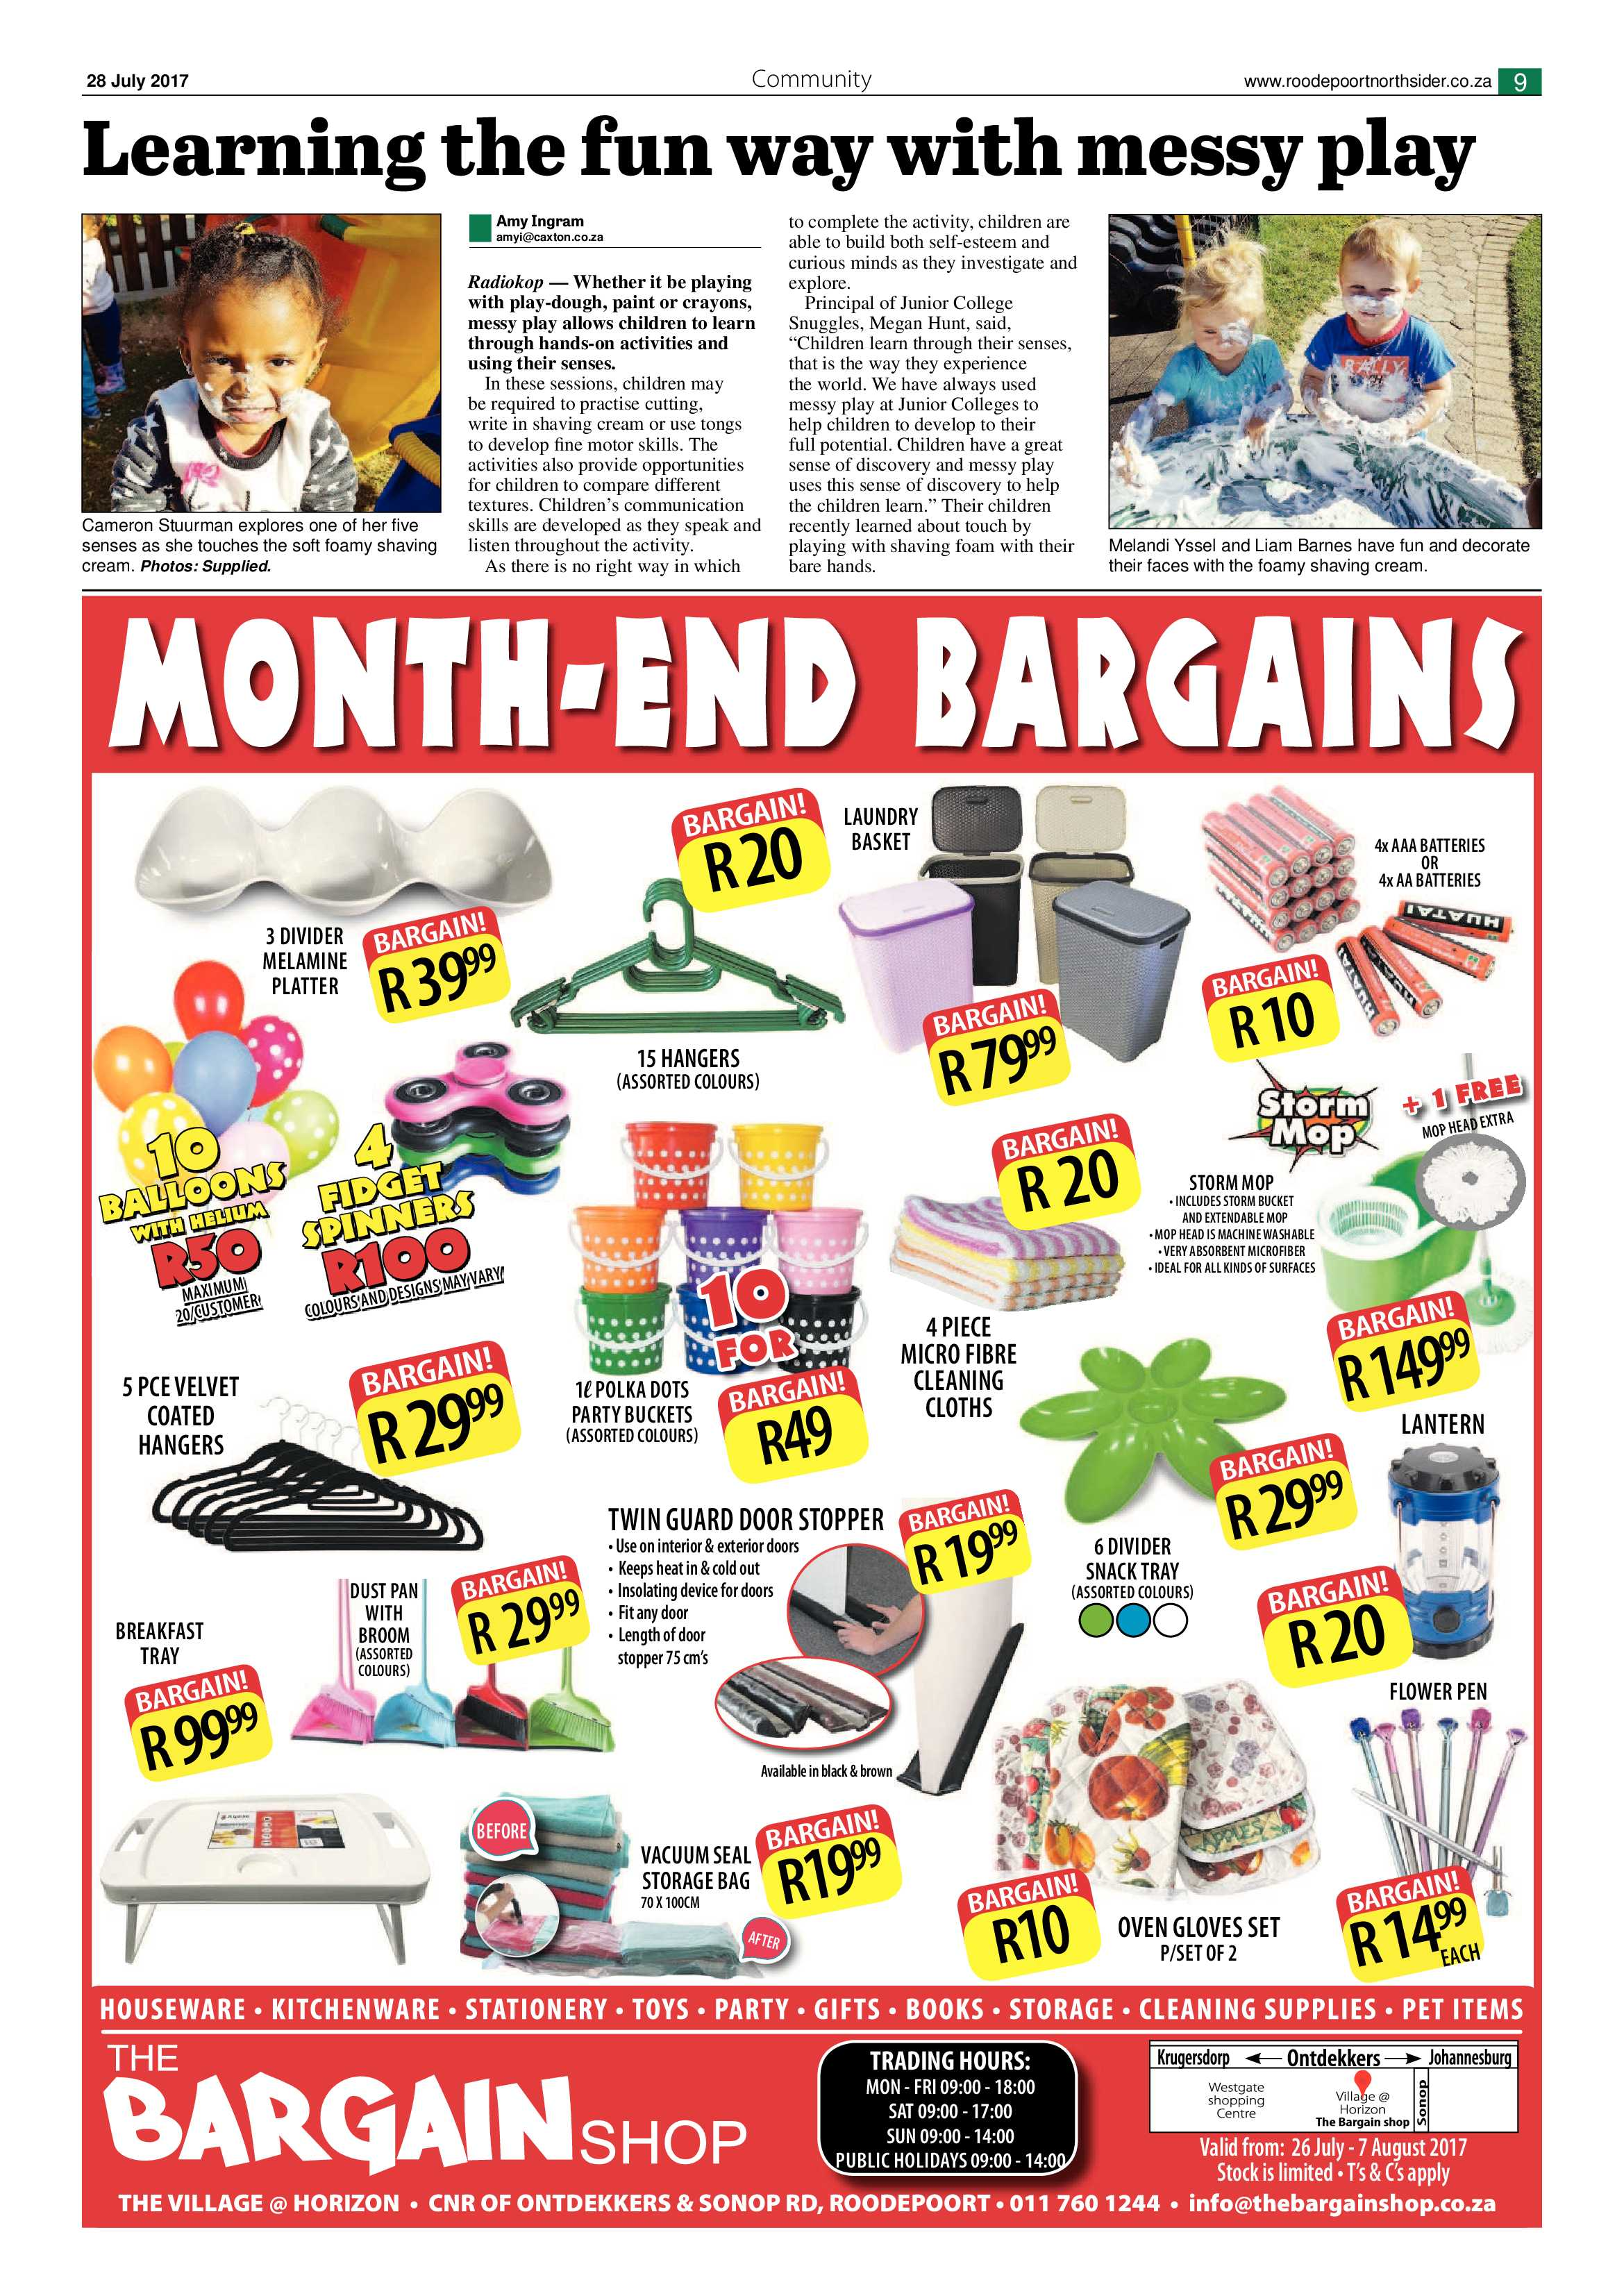 roodepoort-northsider-28-july-2017-epapers-page-9